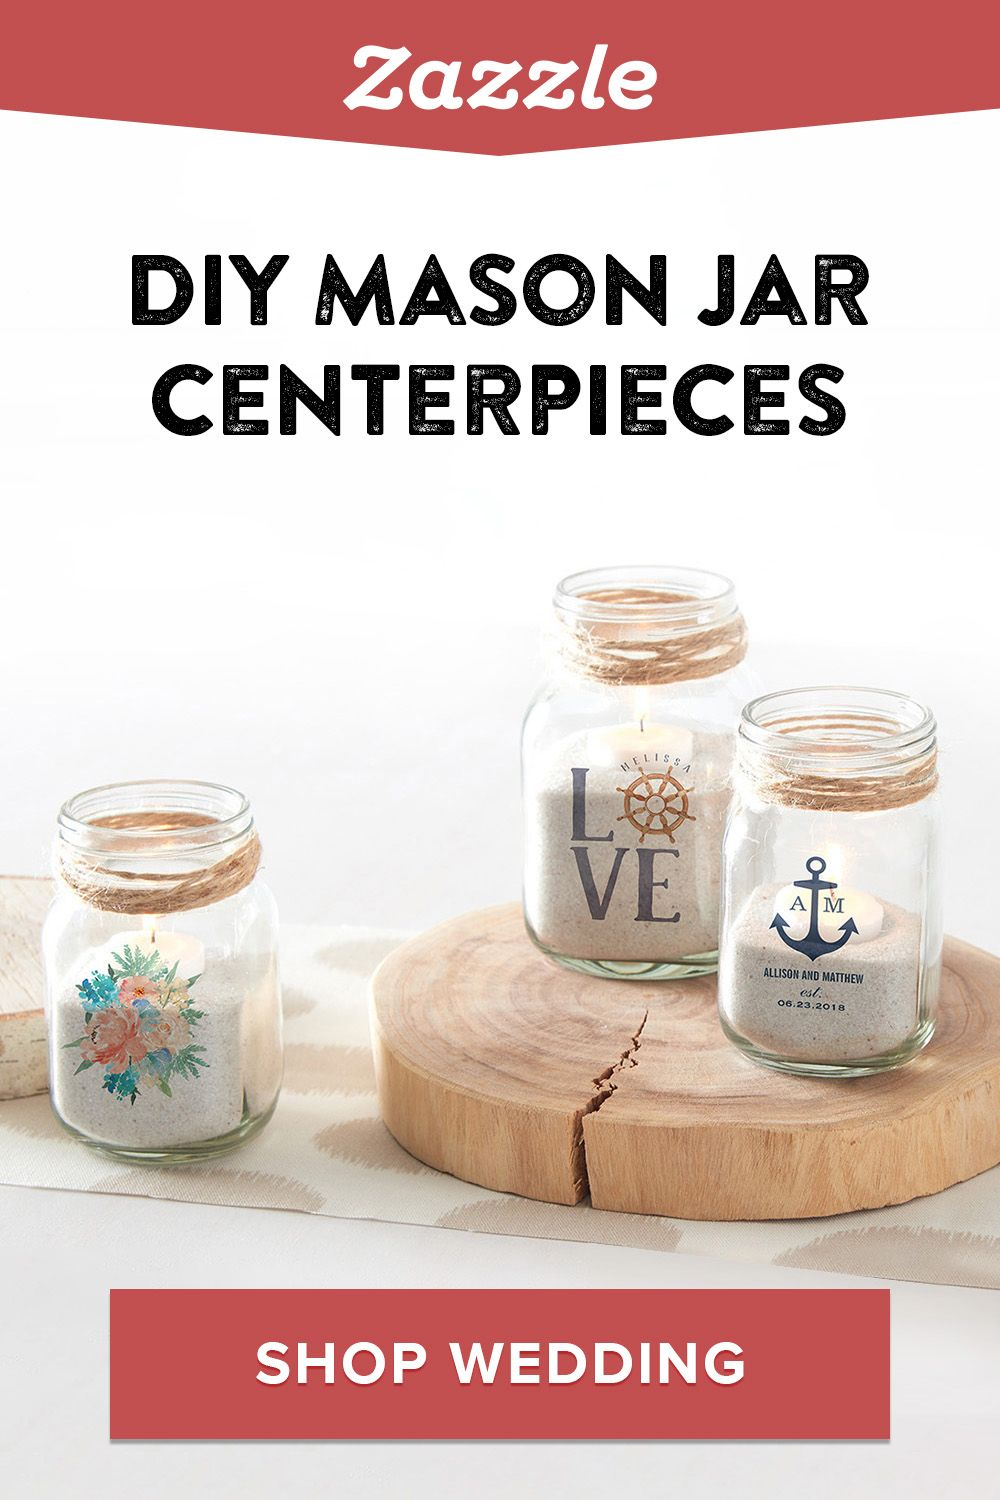 A beautiful yet easy DIY wedding centerpiece: Create a custom mason jar on Zazzle, add sand and a lighted candle, and voila! Shop Zazzle for all things wedding including invitations, menus, decor and more.